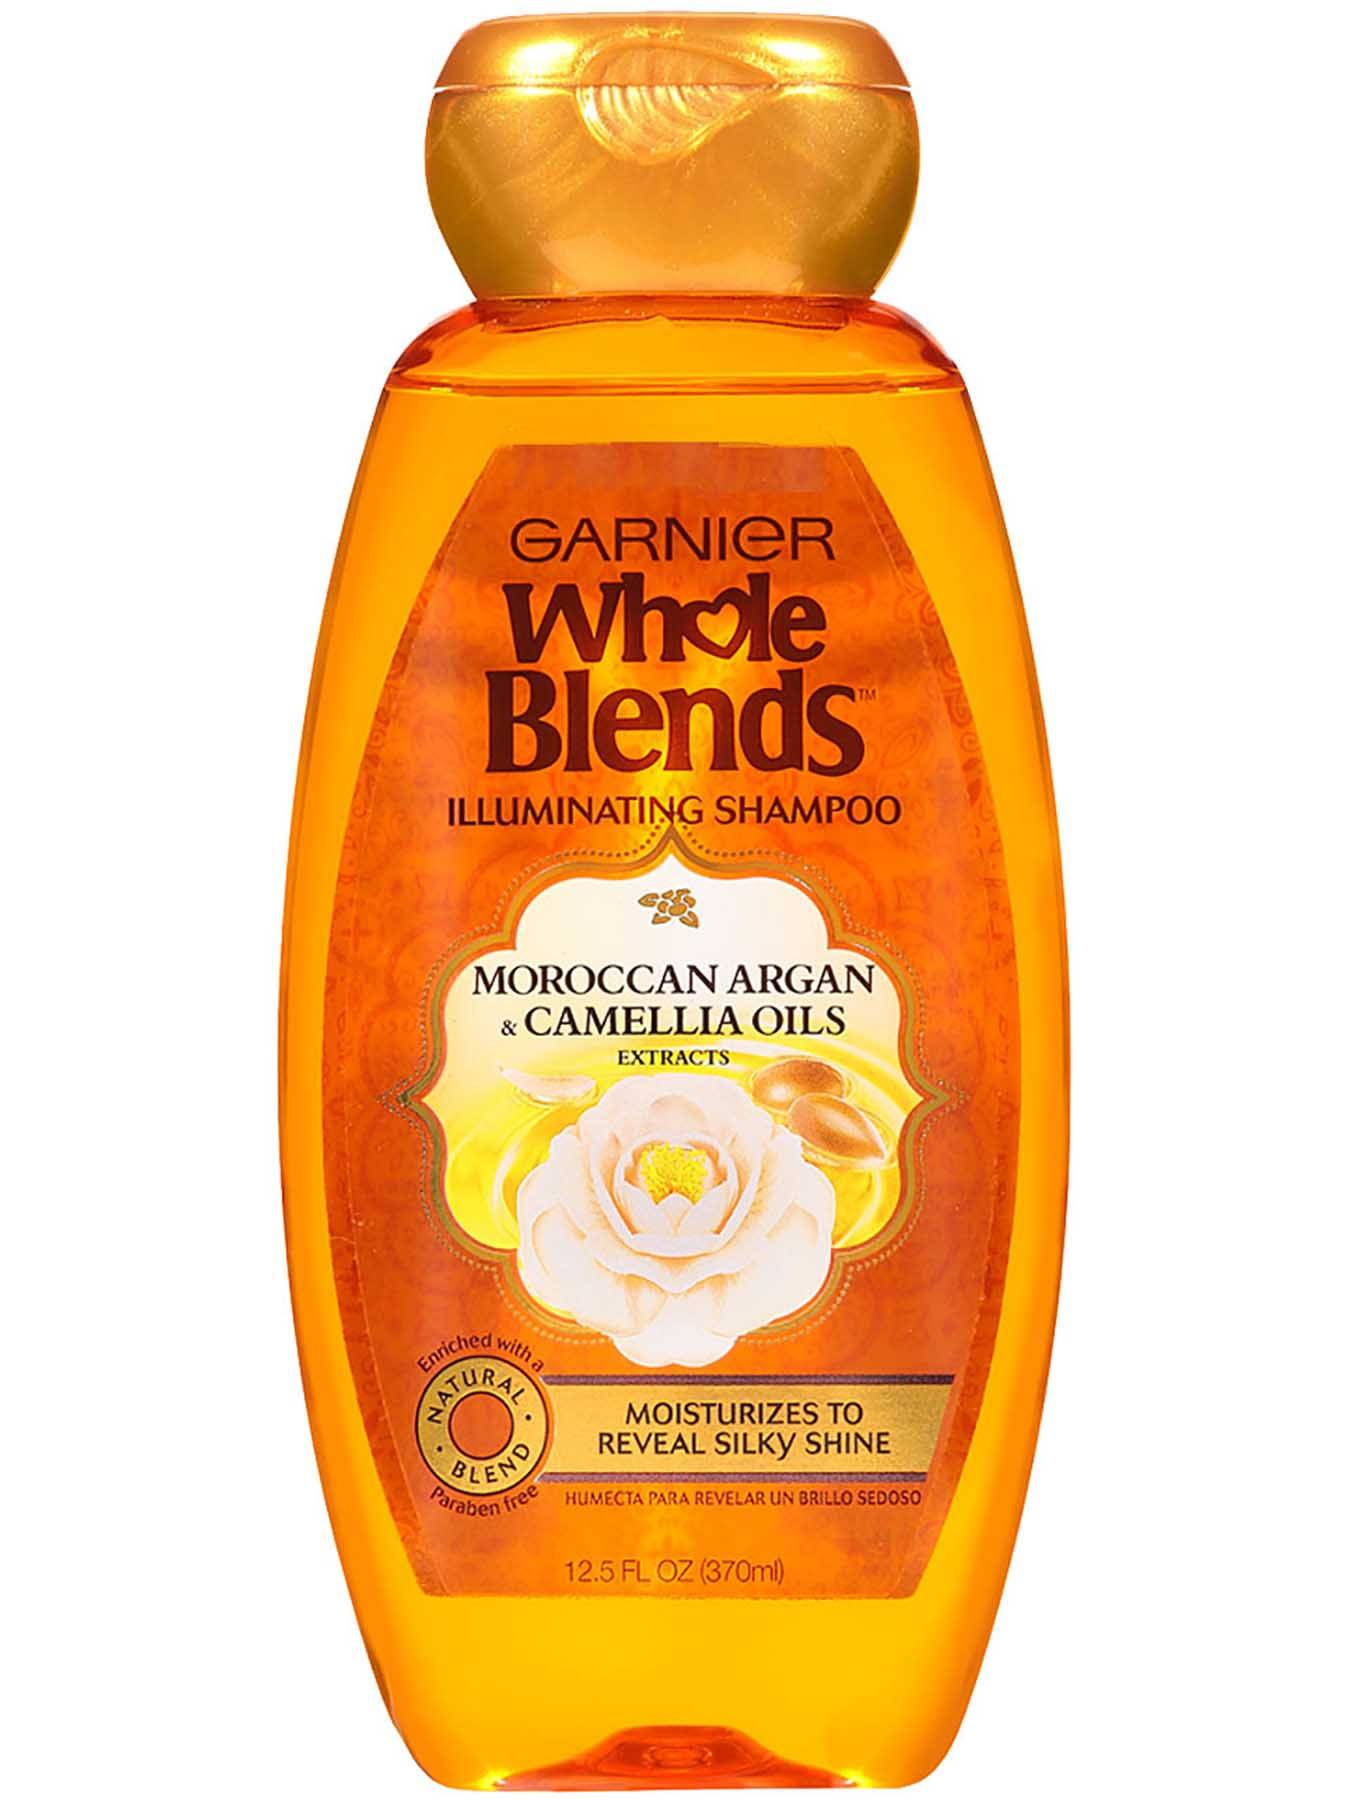 Garnier Whole Blends Illuminating Shampoo Moroccan Argan Camellia Oils Extracts Front Of Bottle